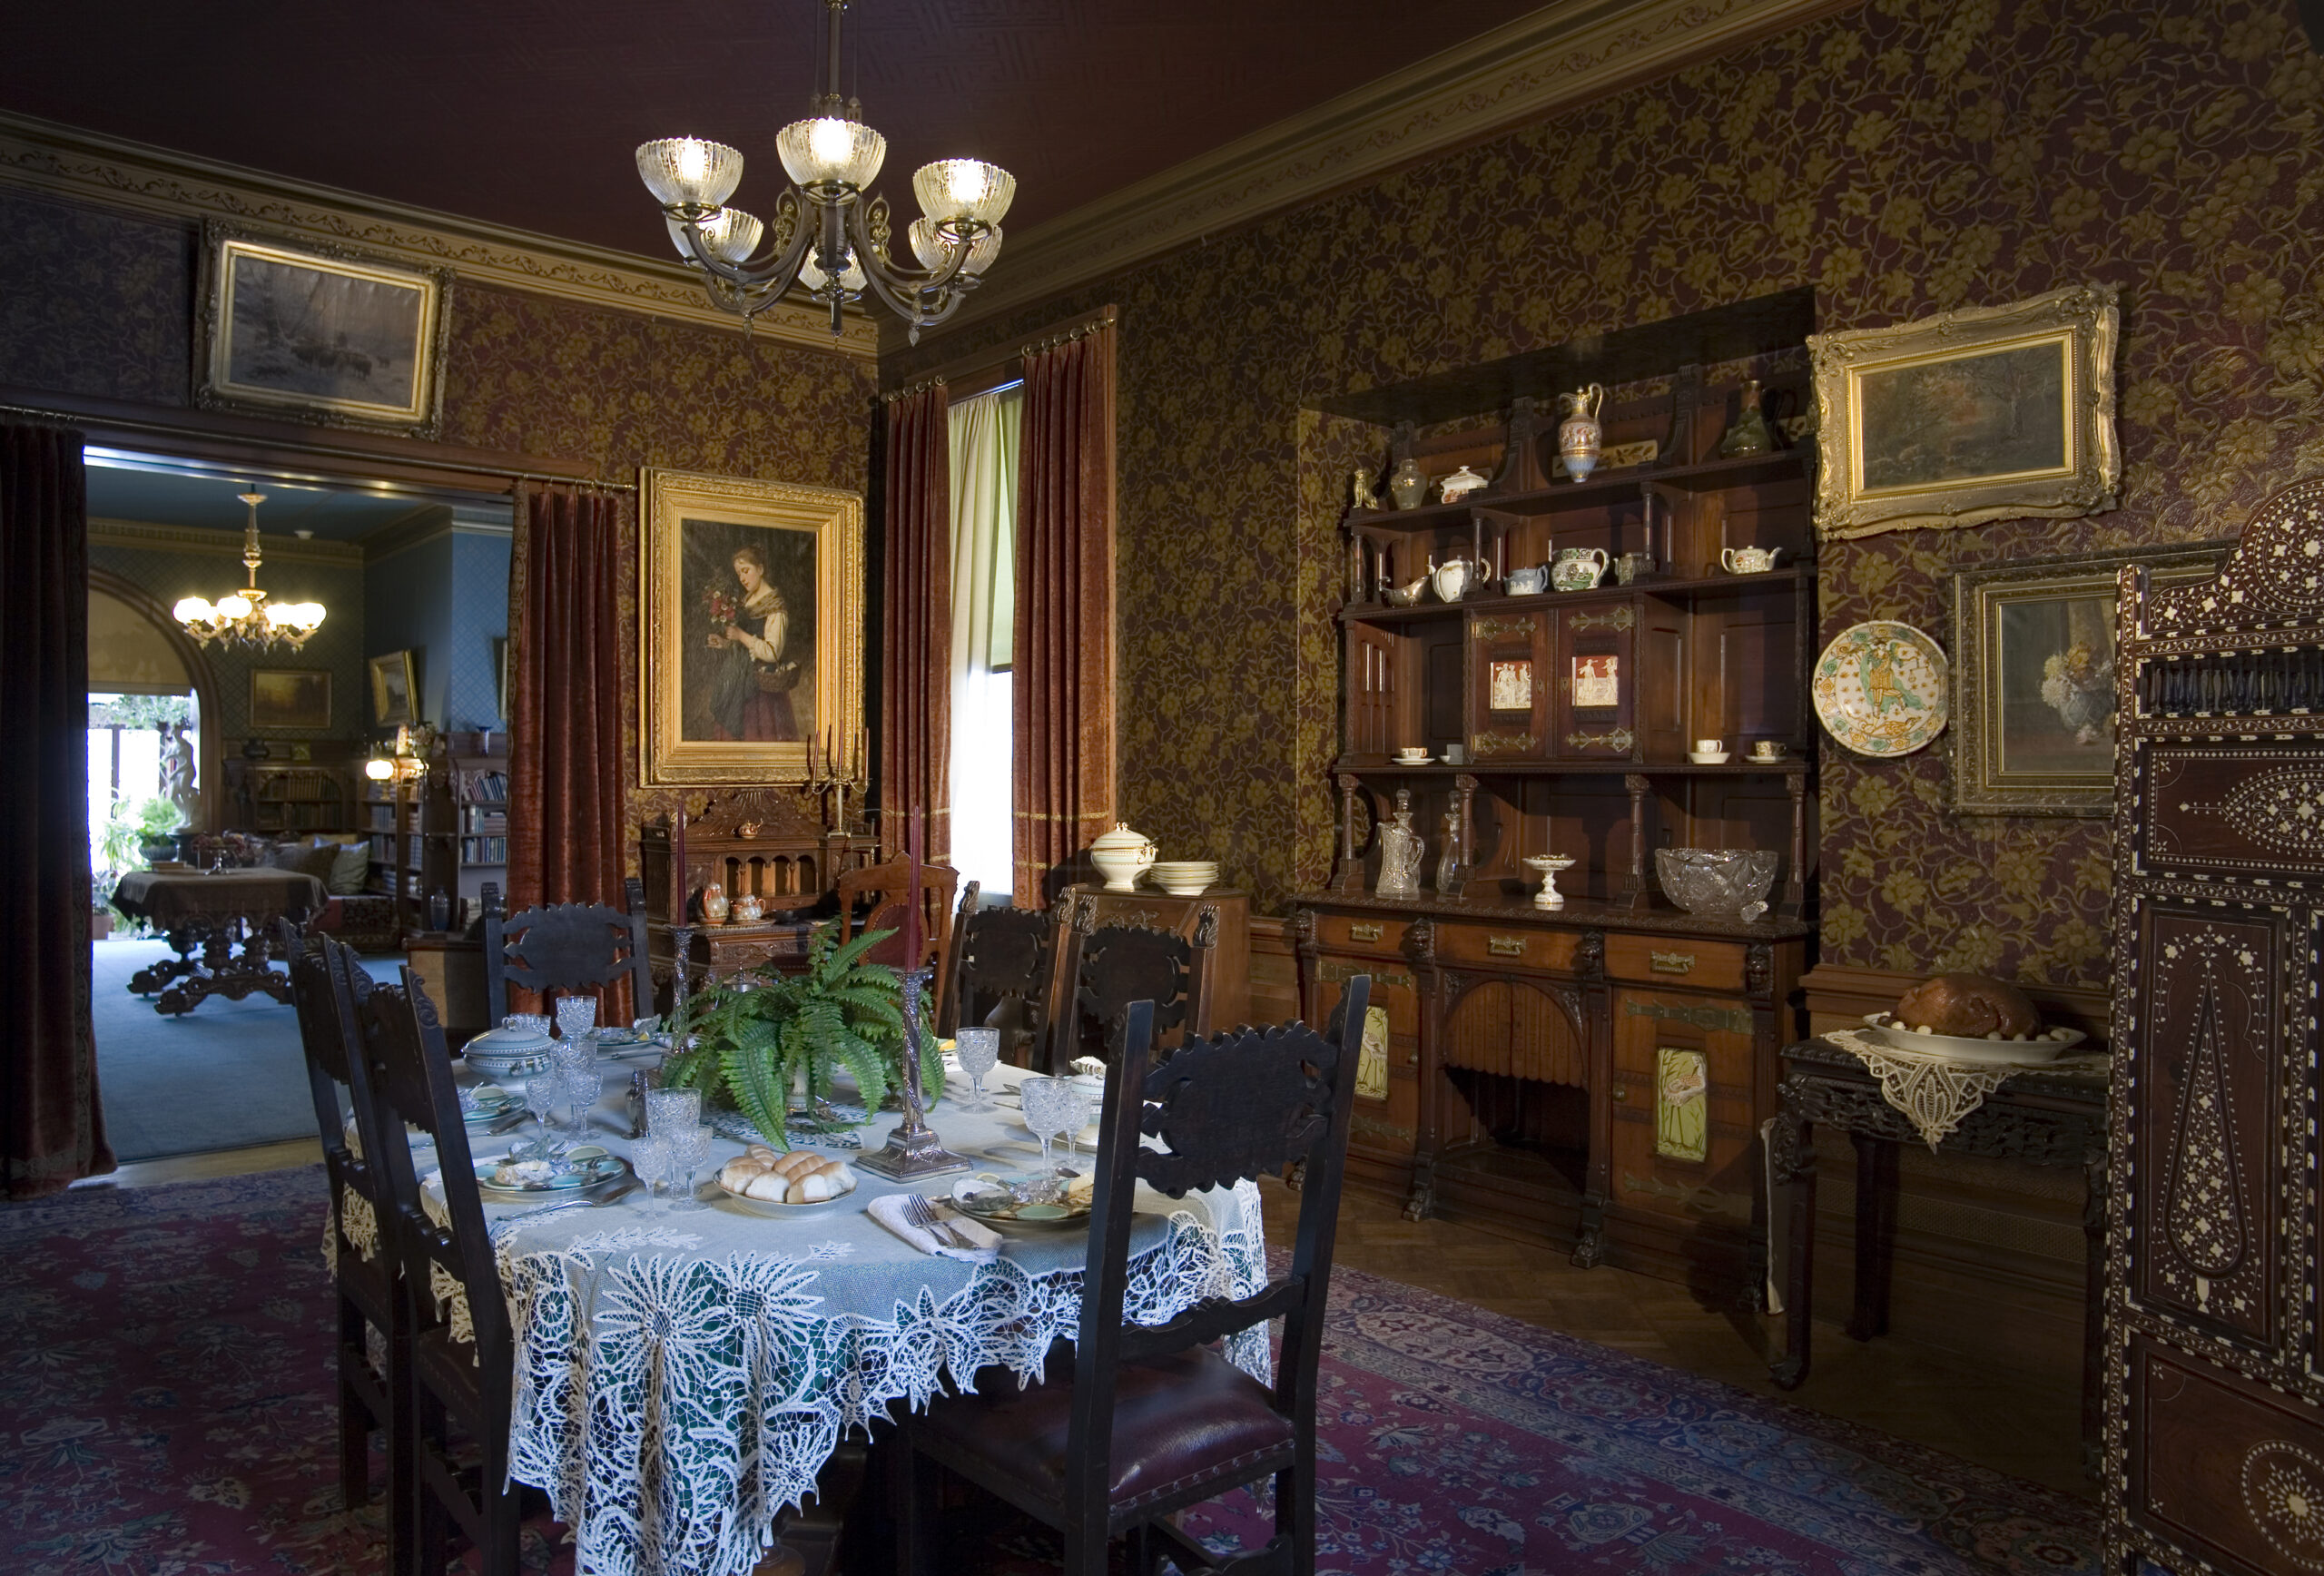 The Dining Room: Most meals were eaten here from small family dinners to small dinner parties